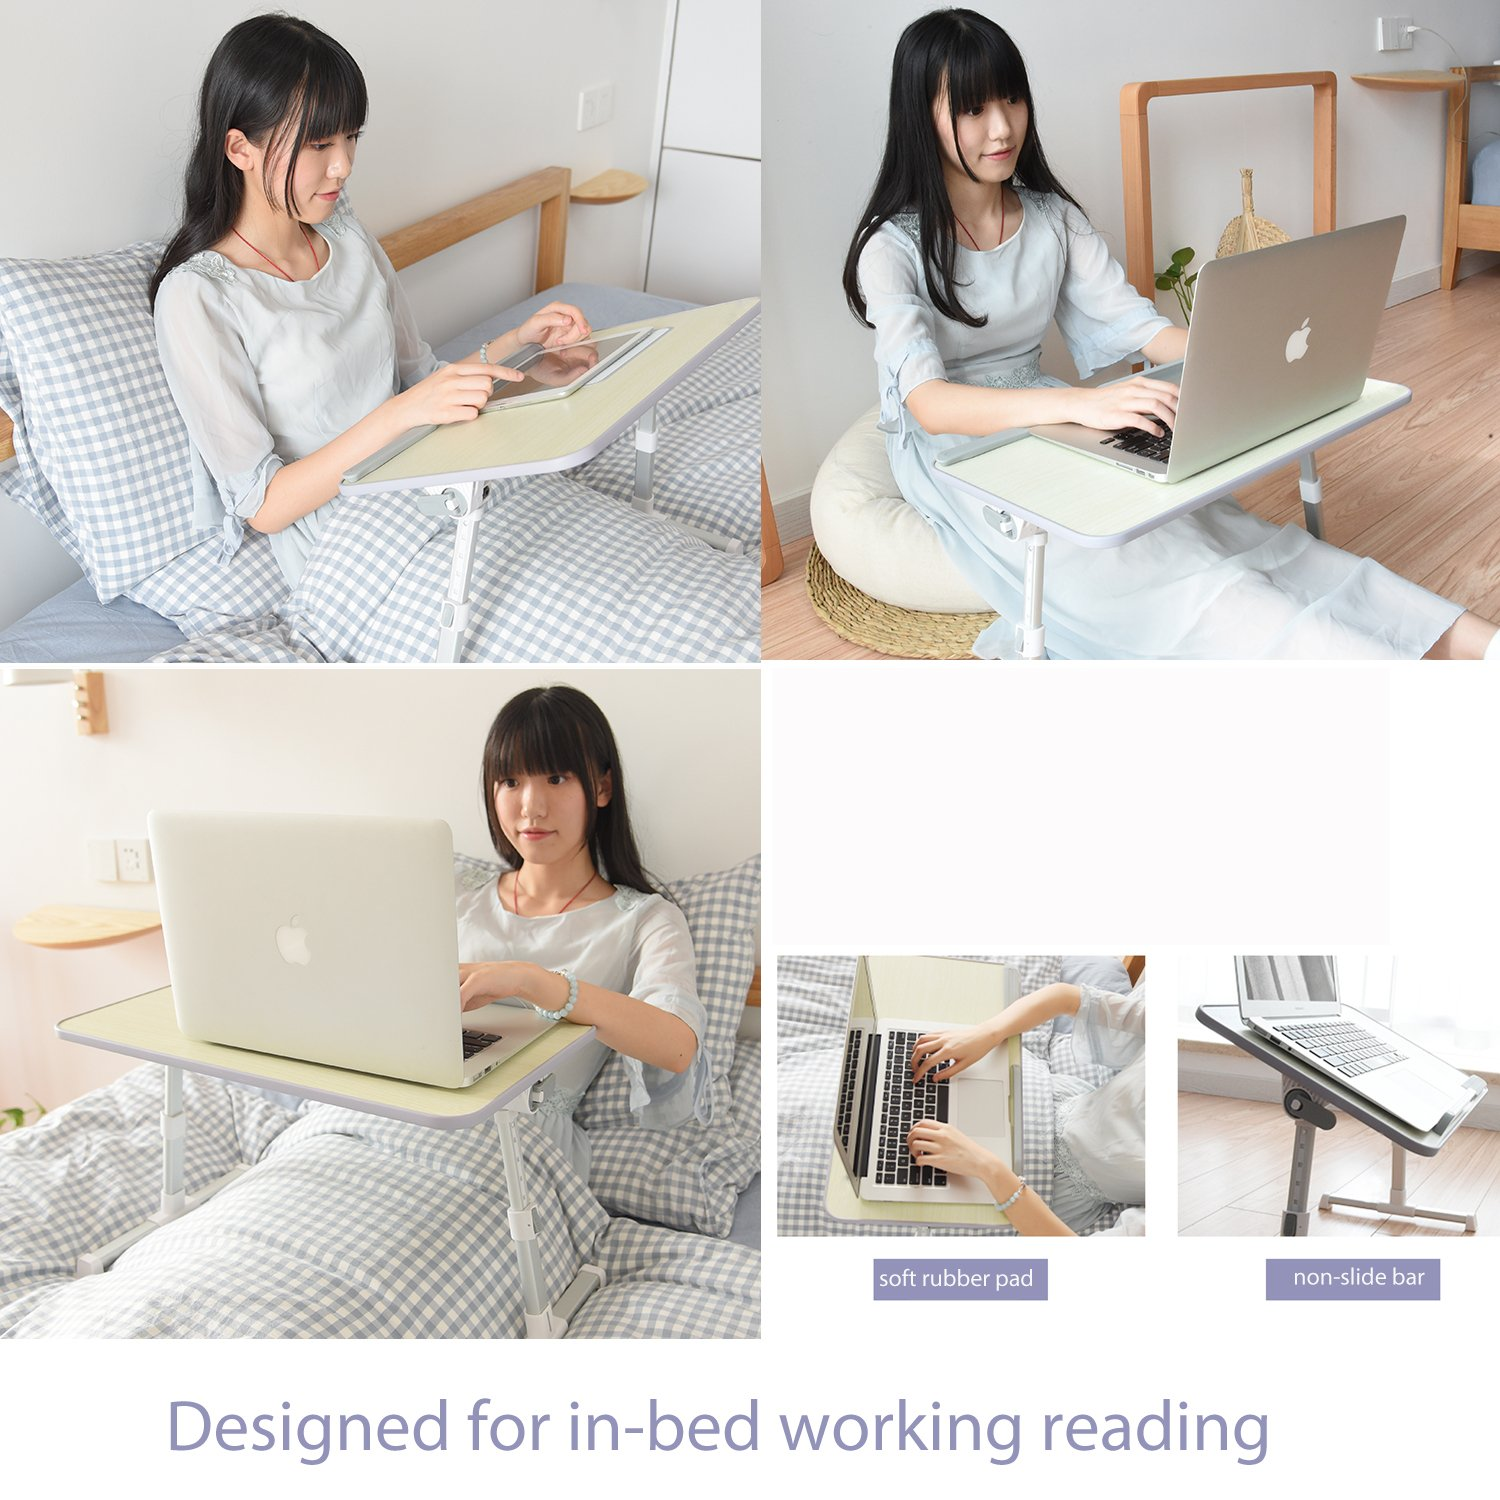 Adjustable Laptop Stand for Desk Bed Couch,Fit for 13-15inch Laptop,Foldable and Portable,Comfortable Ideal for Sit/Stand Lying Working by Aplomb (Image #4)